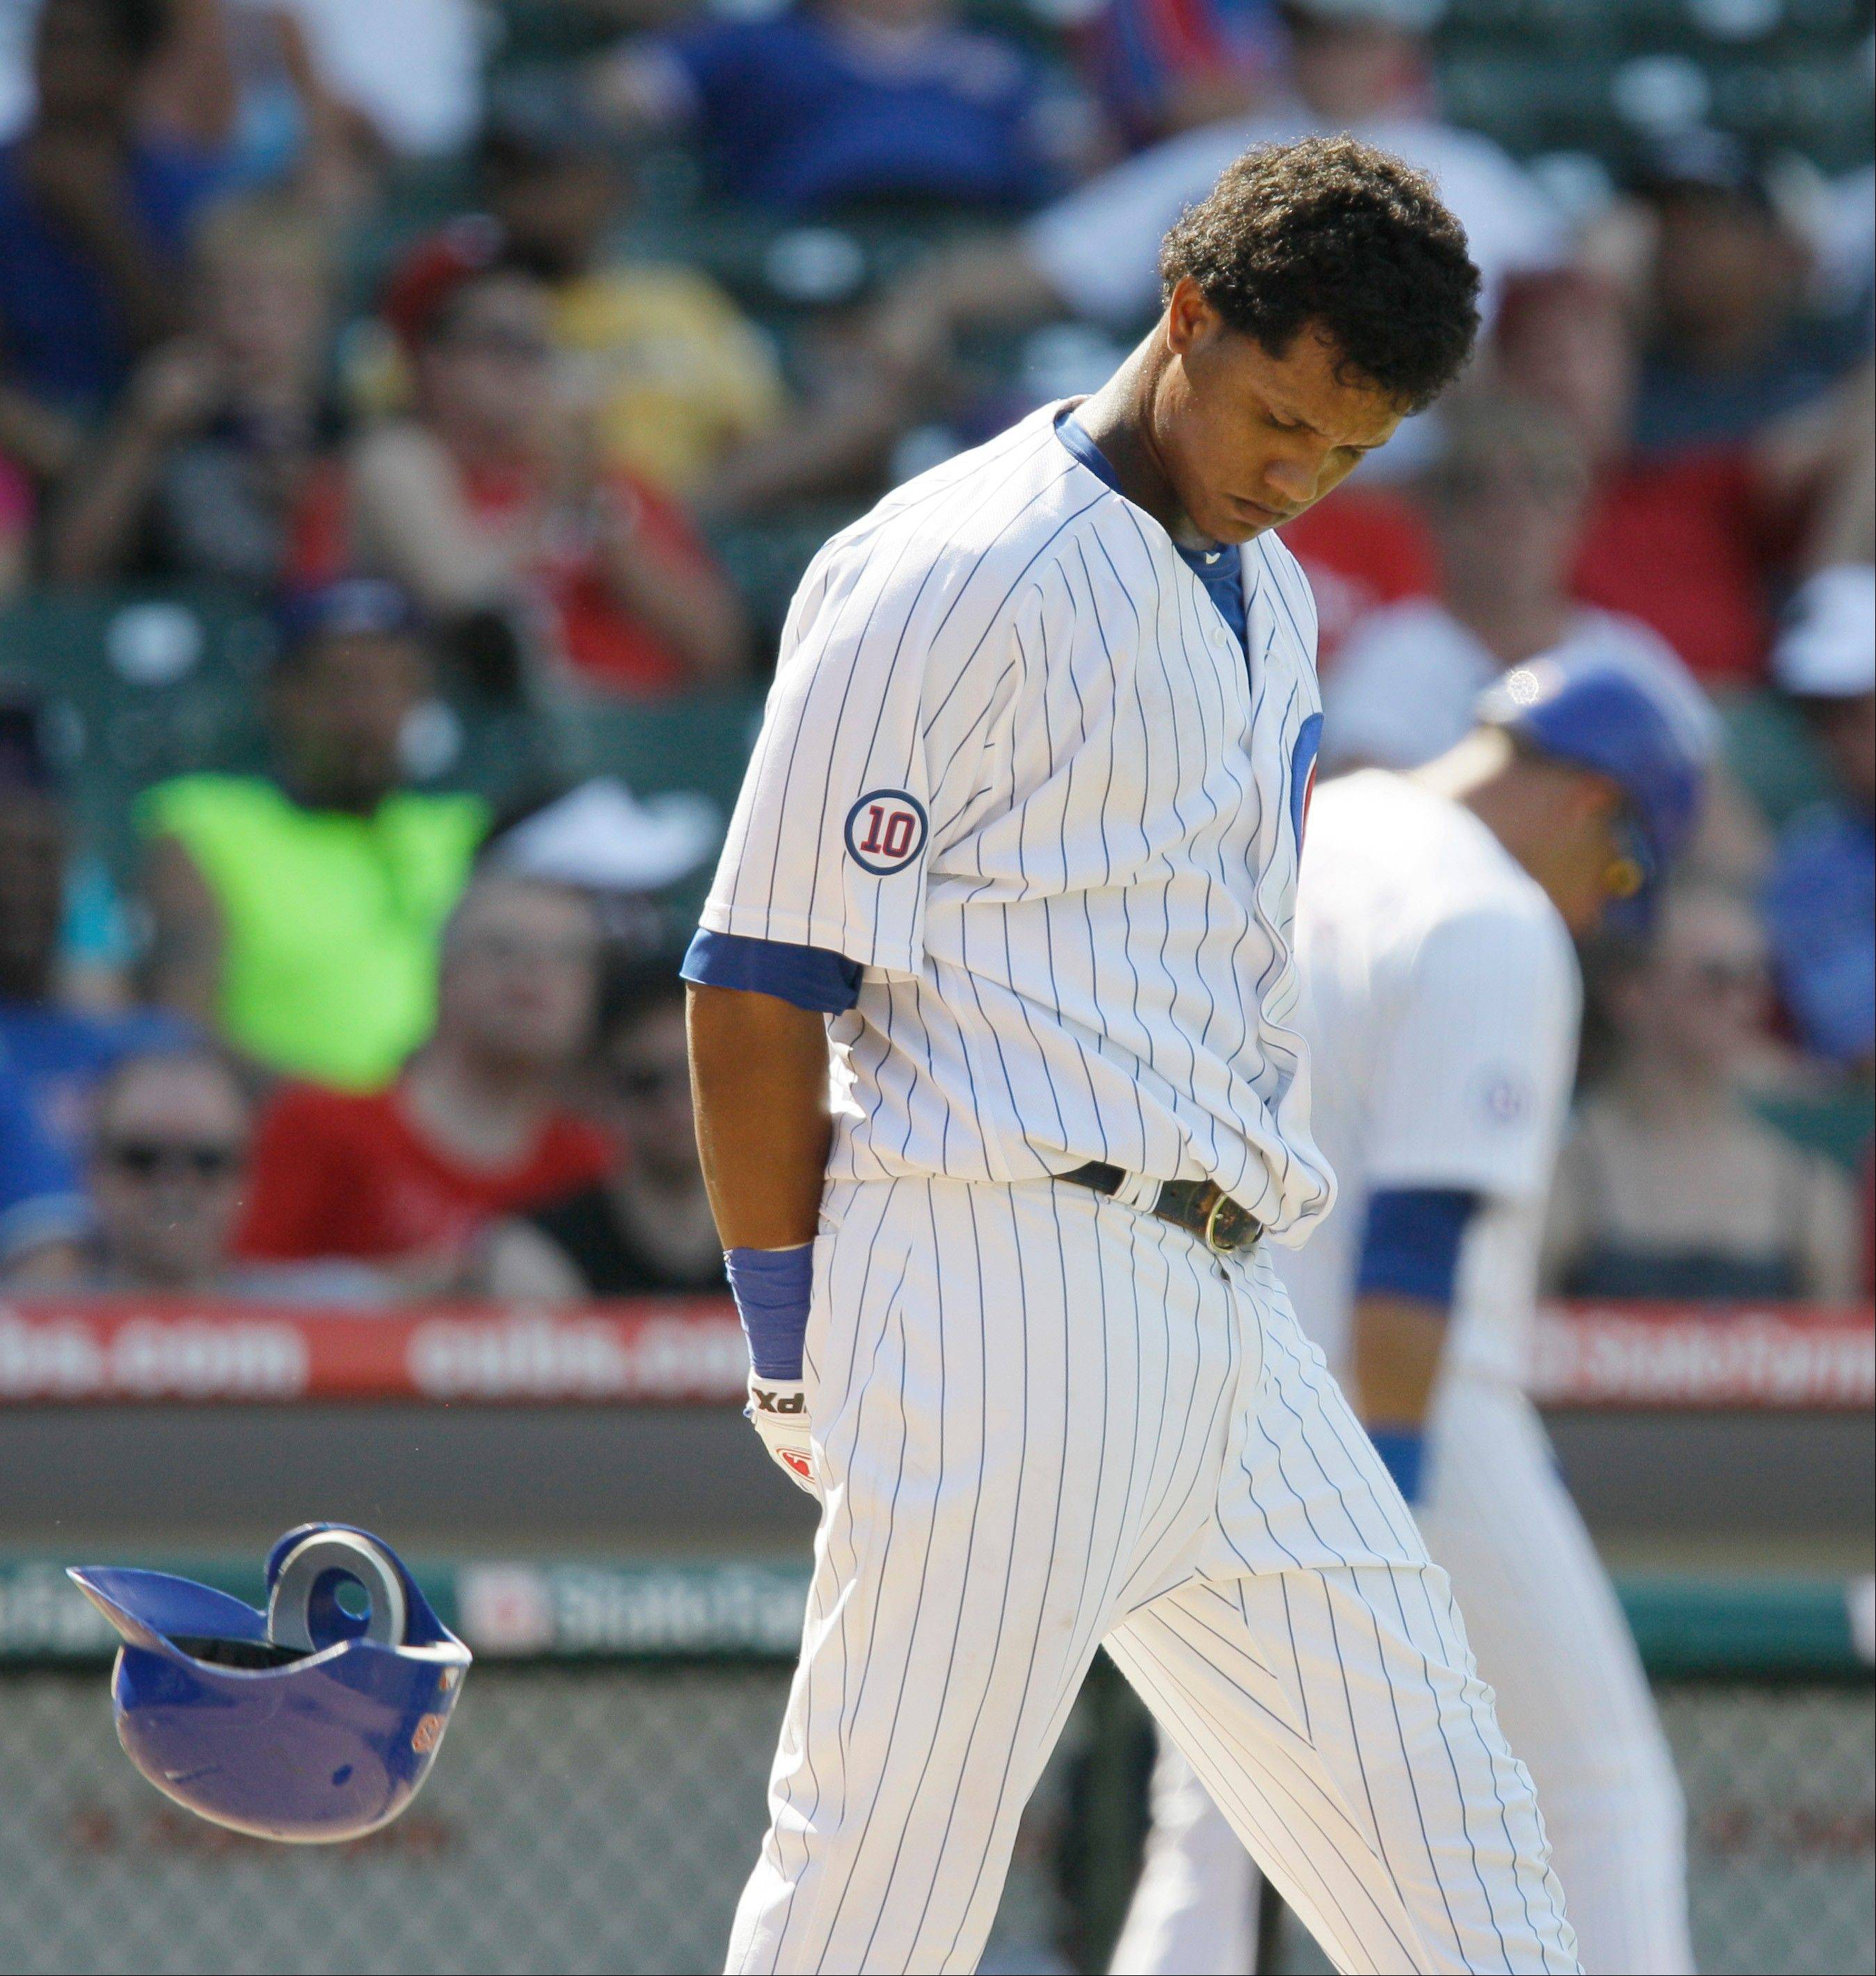 Starlin Castro reacts after striking out Wednesday during the eighth inning against the Philadelphia Phillies. The Phillies won 9-1.